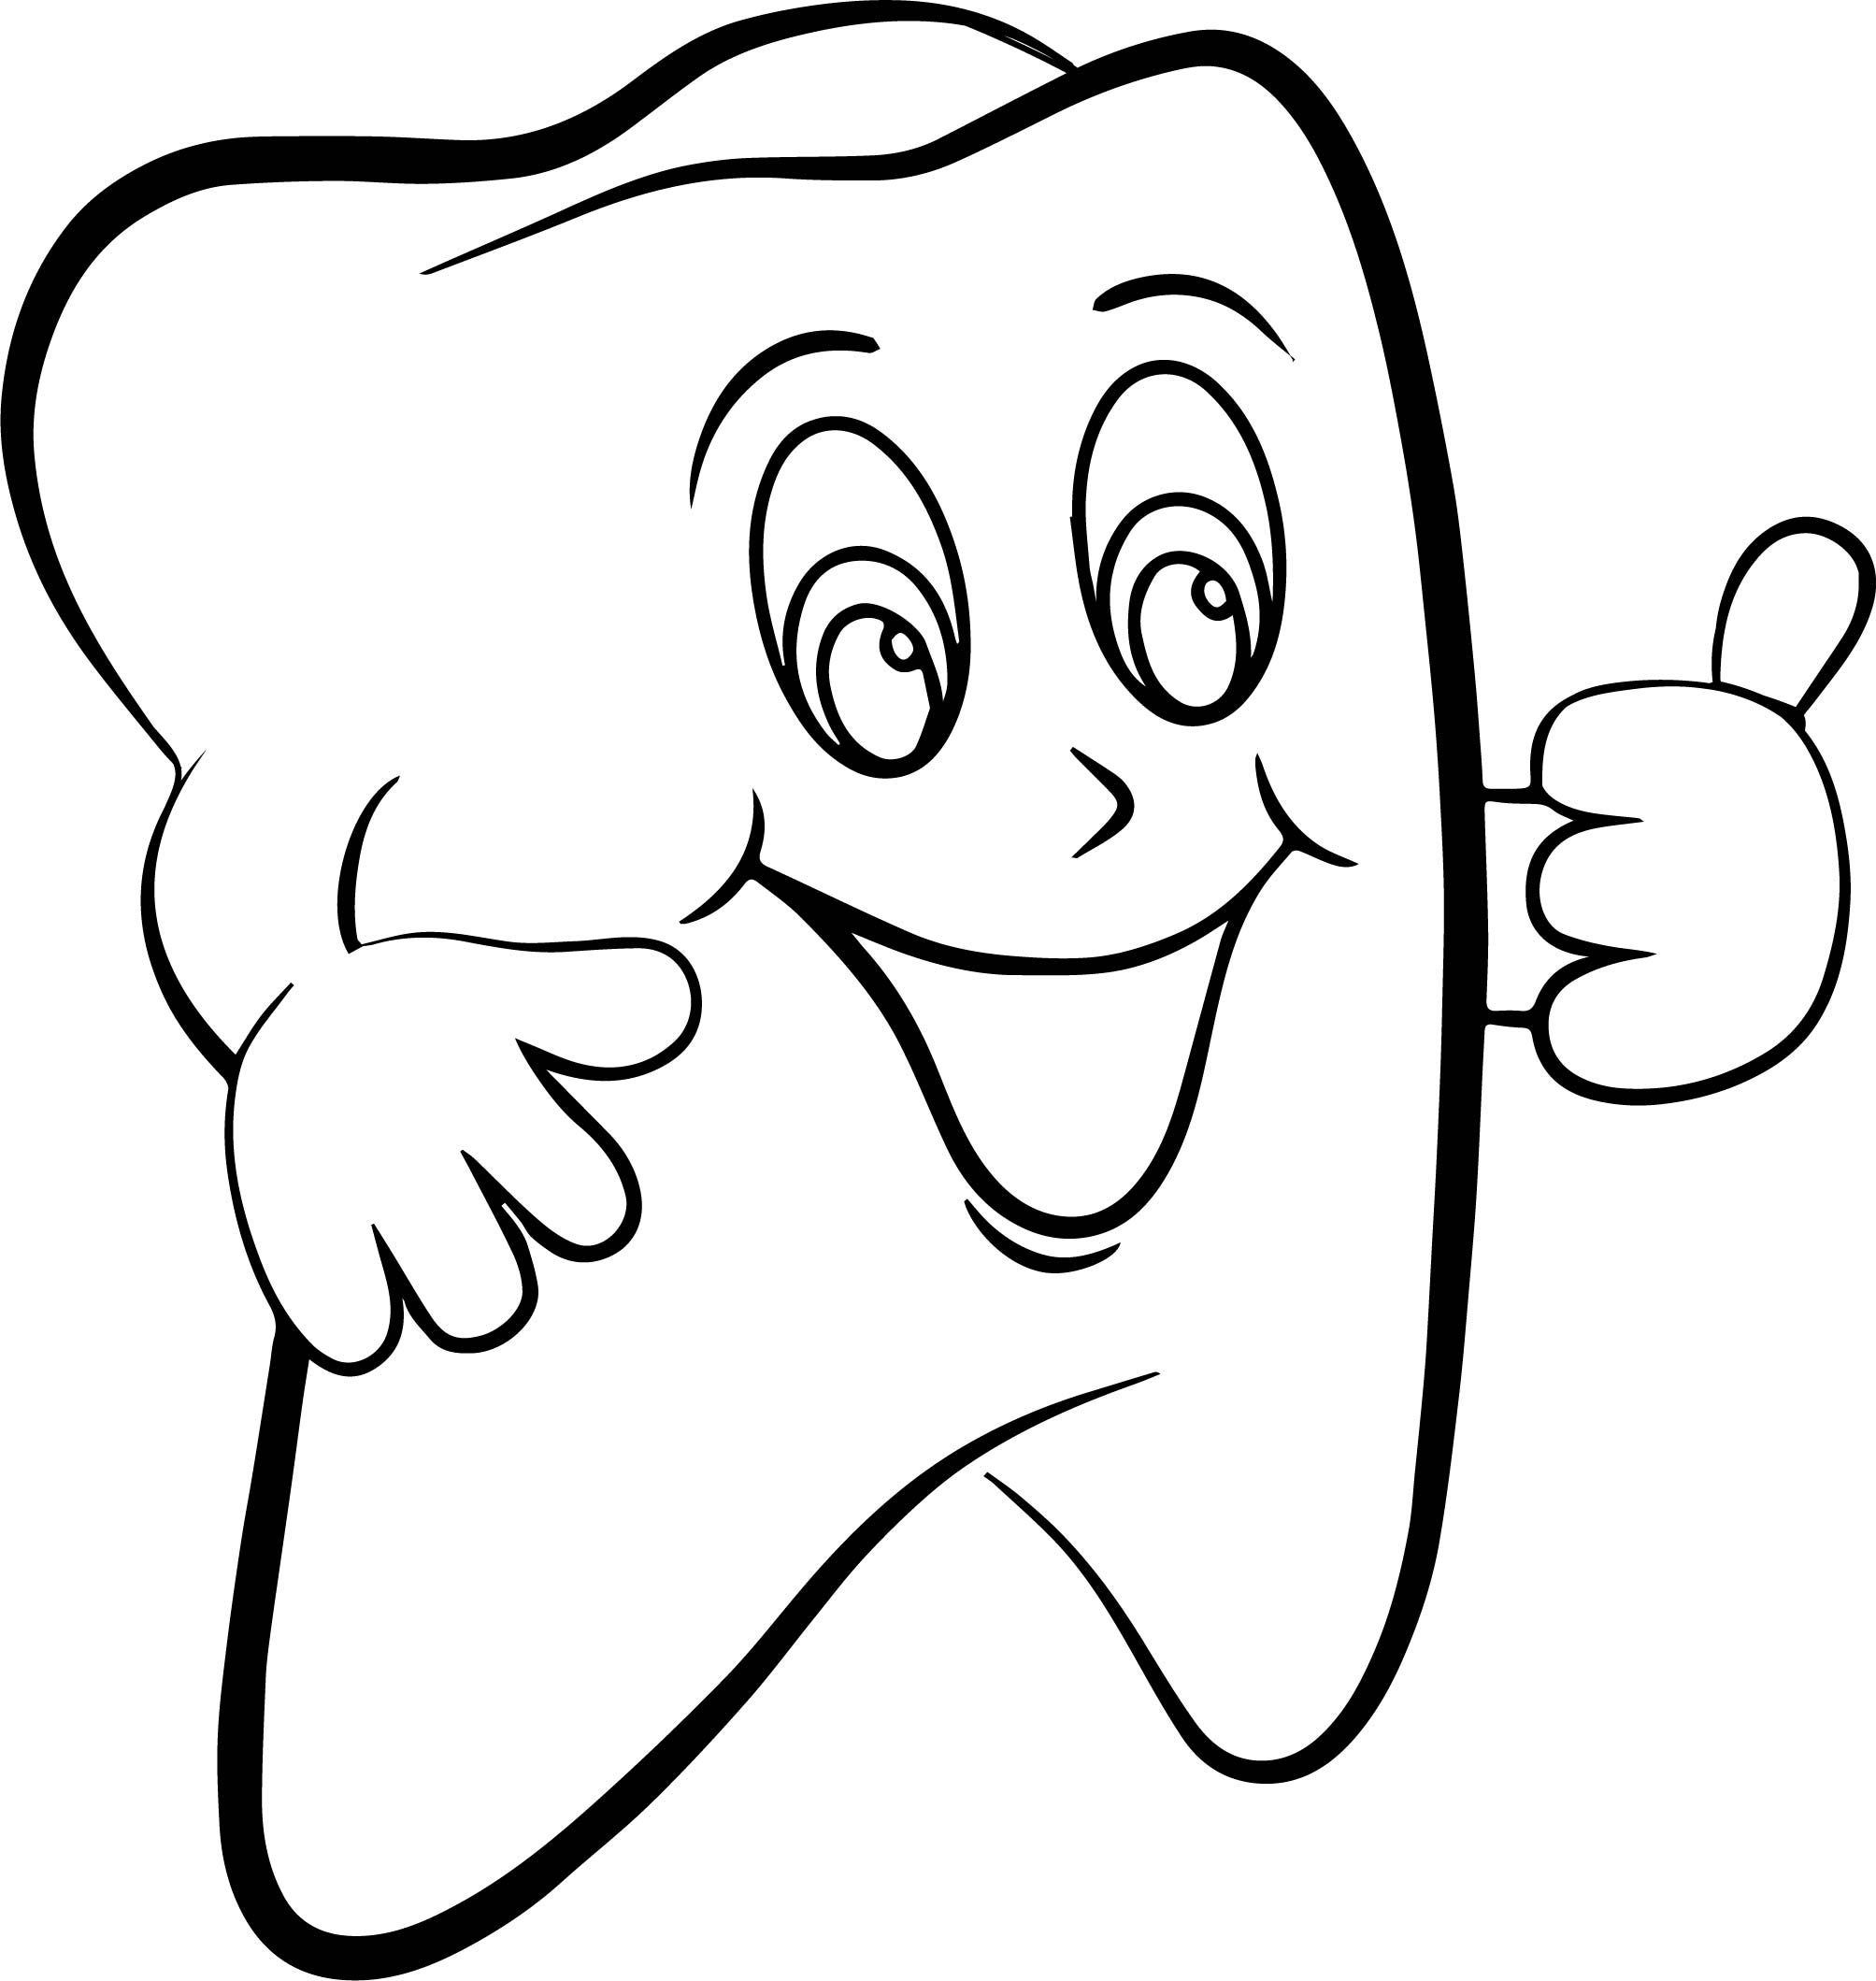 Super Dental Tooth Coloring Page